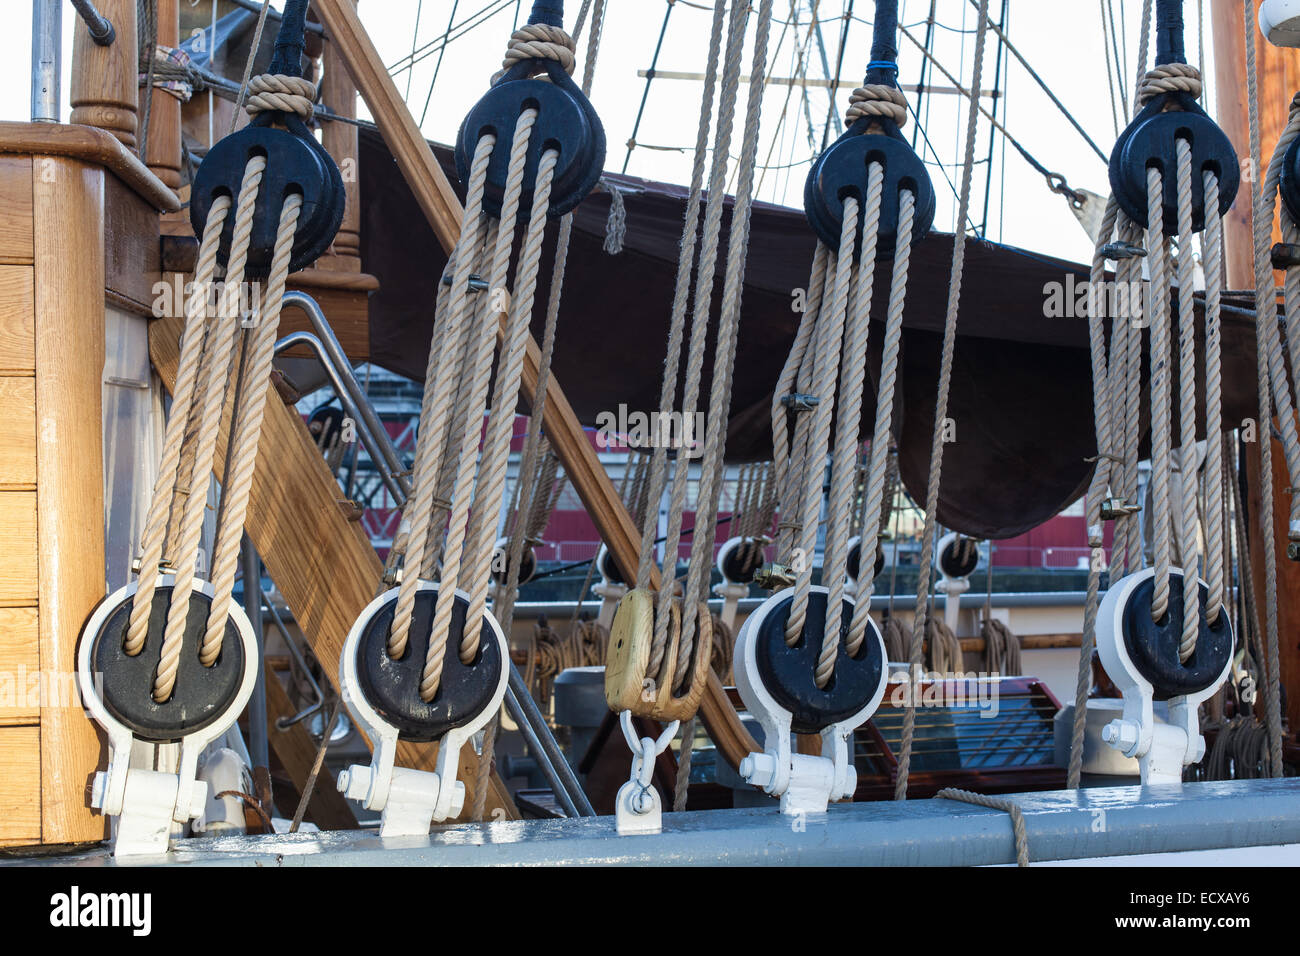 The Kaskelot tall ship in Bristol Harbour, detail of rigging - Stock Image